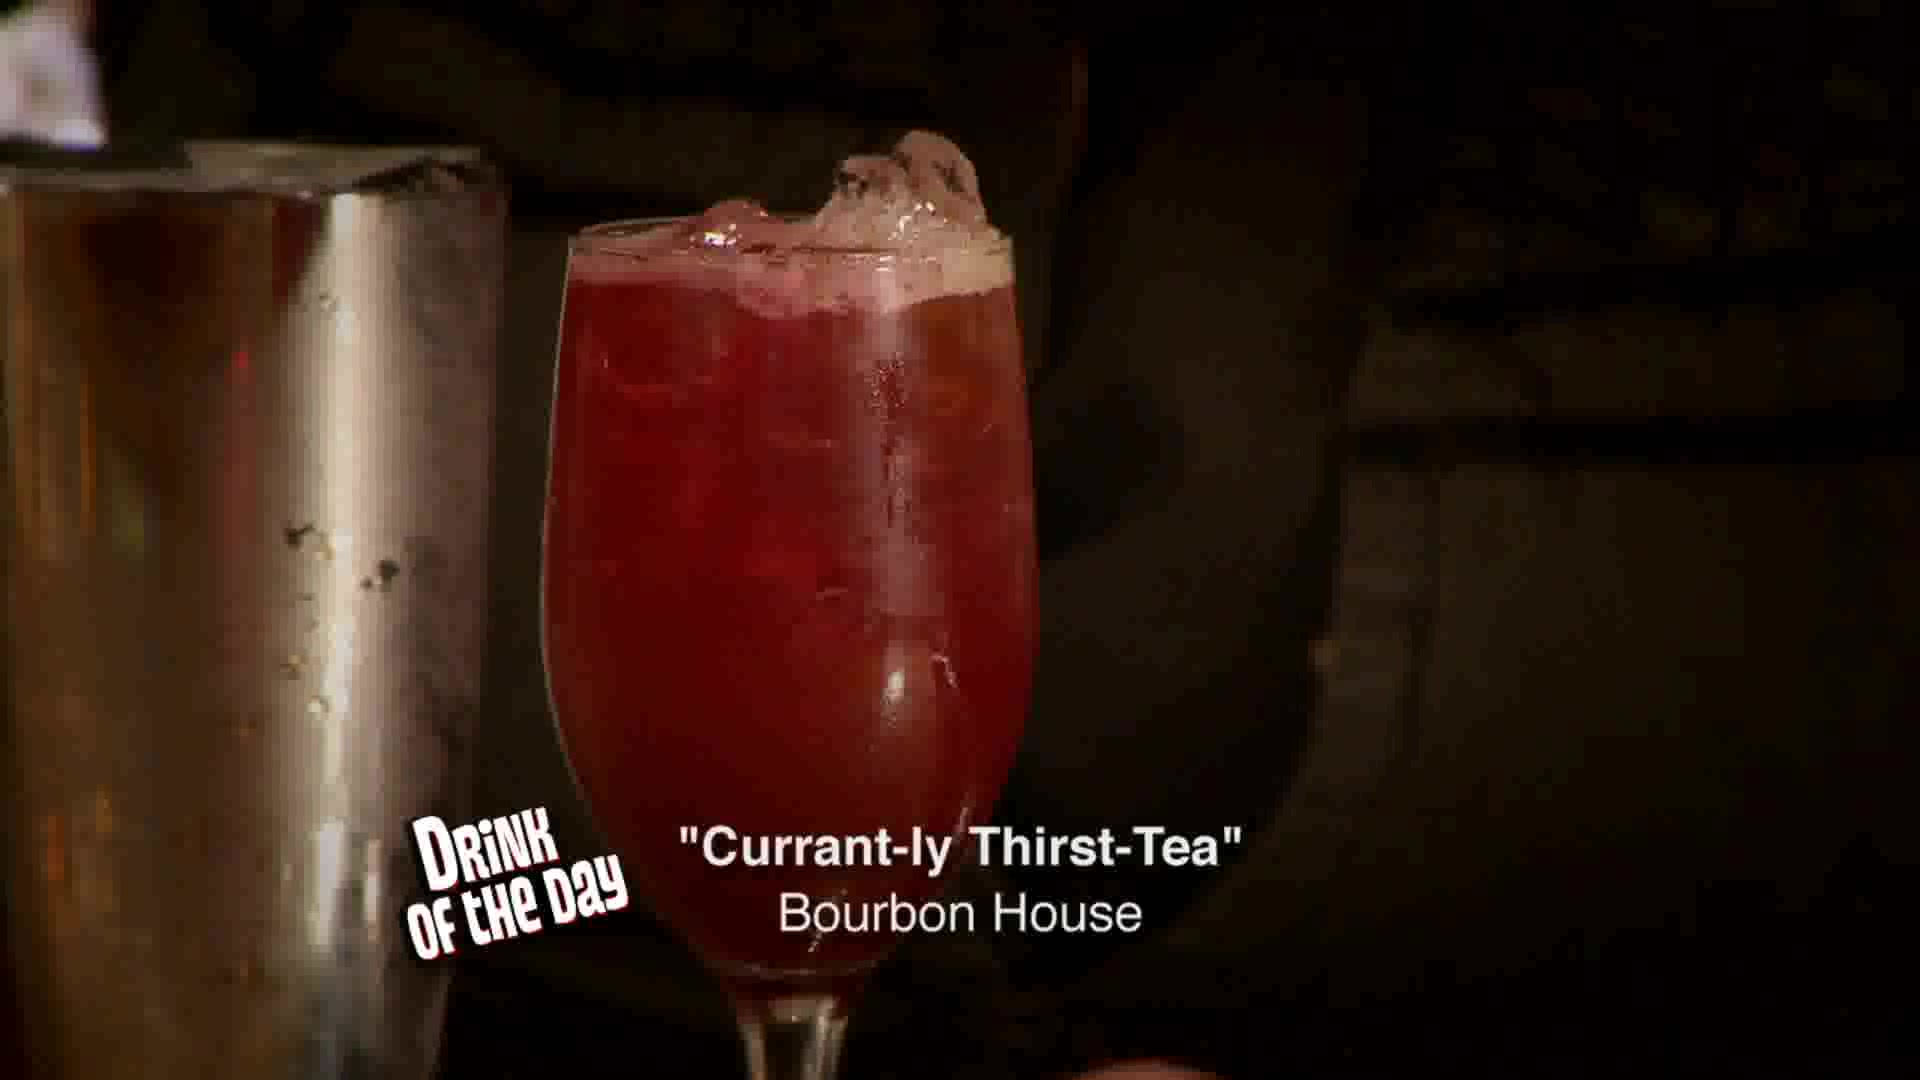 Drink of the Day: Currant-Ly Thirst Tea